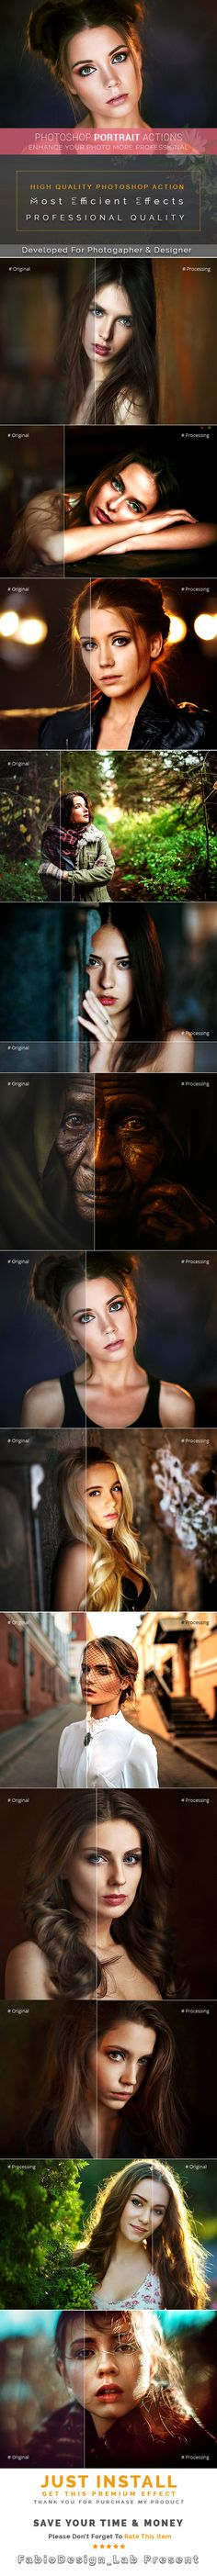 #Photoshop Portrait Actions - #Photo Effects Actions Download here: https://graphicriver.net/item/photoshop-portrait-actions/19383439?ref=alena994